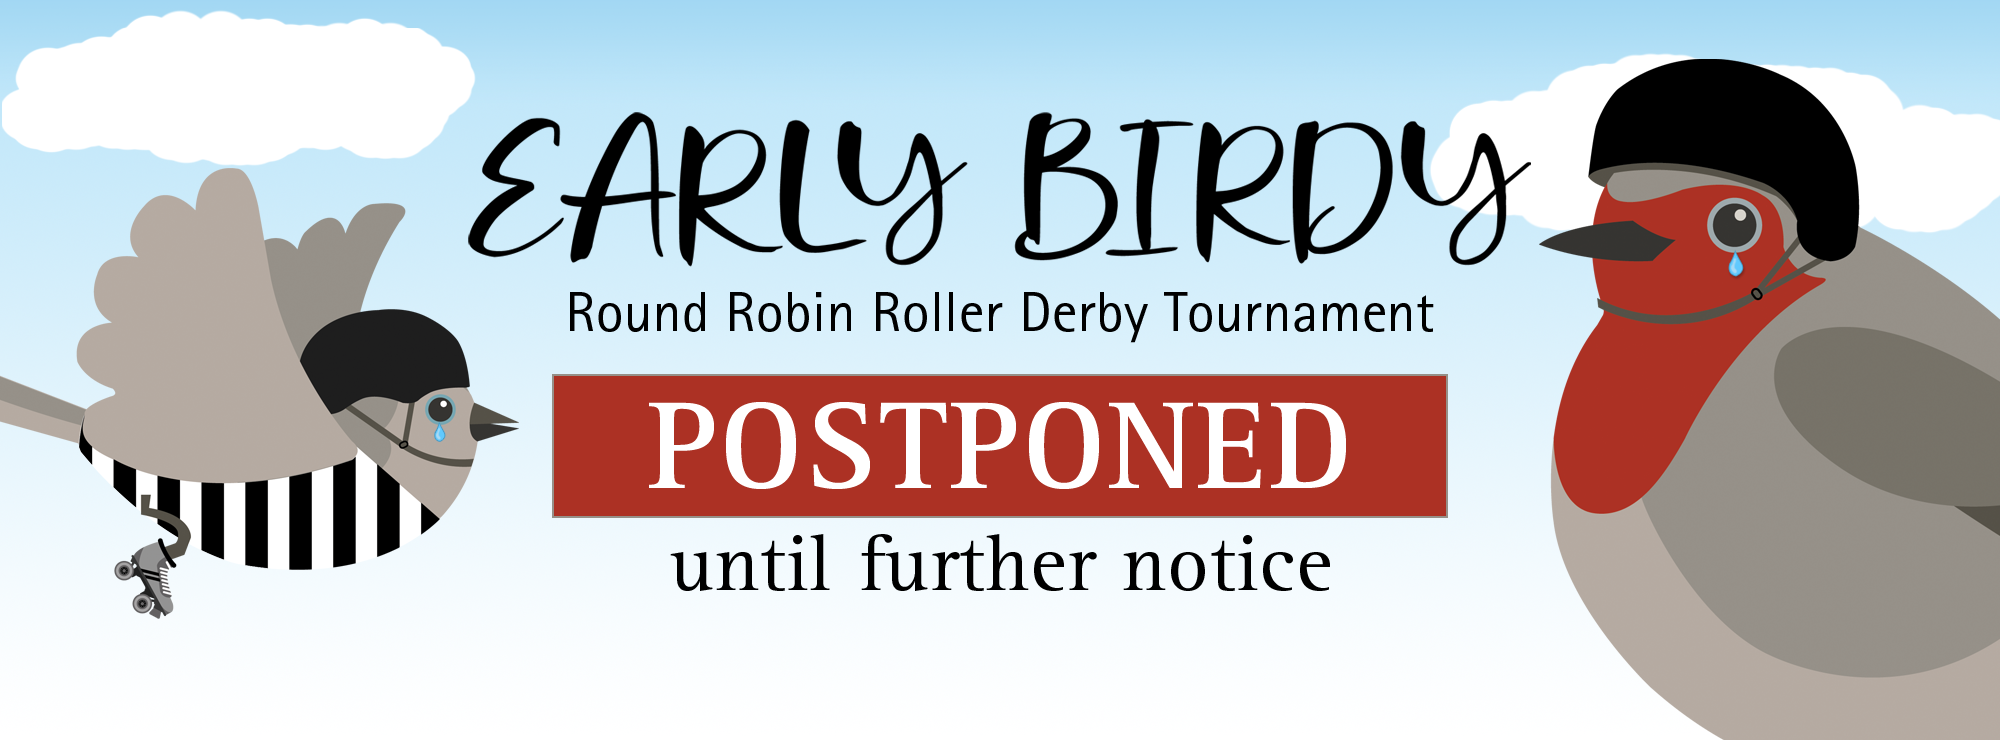 Early-Birdy-TOURNEY_POSTPONED_COVER-IMAGE